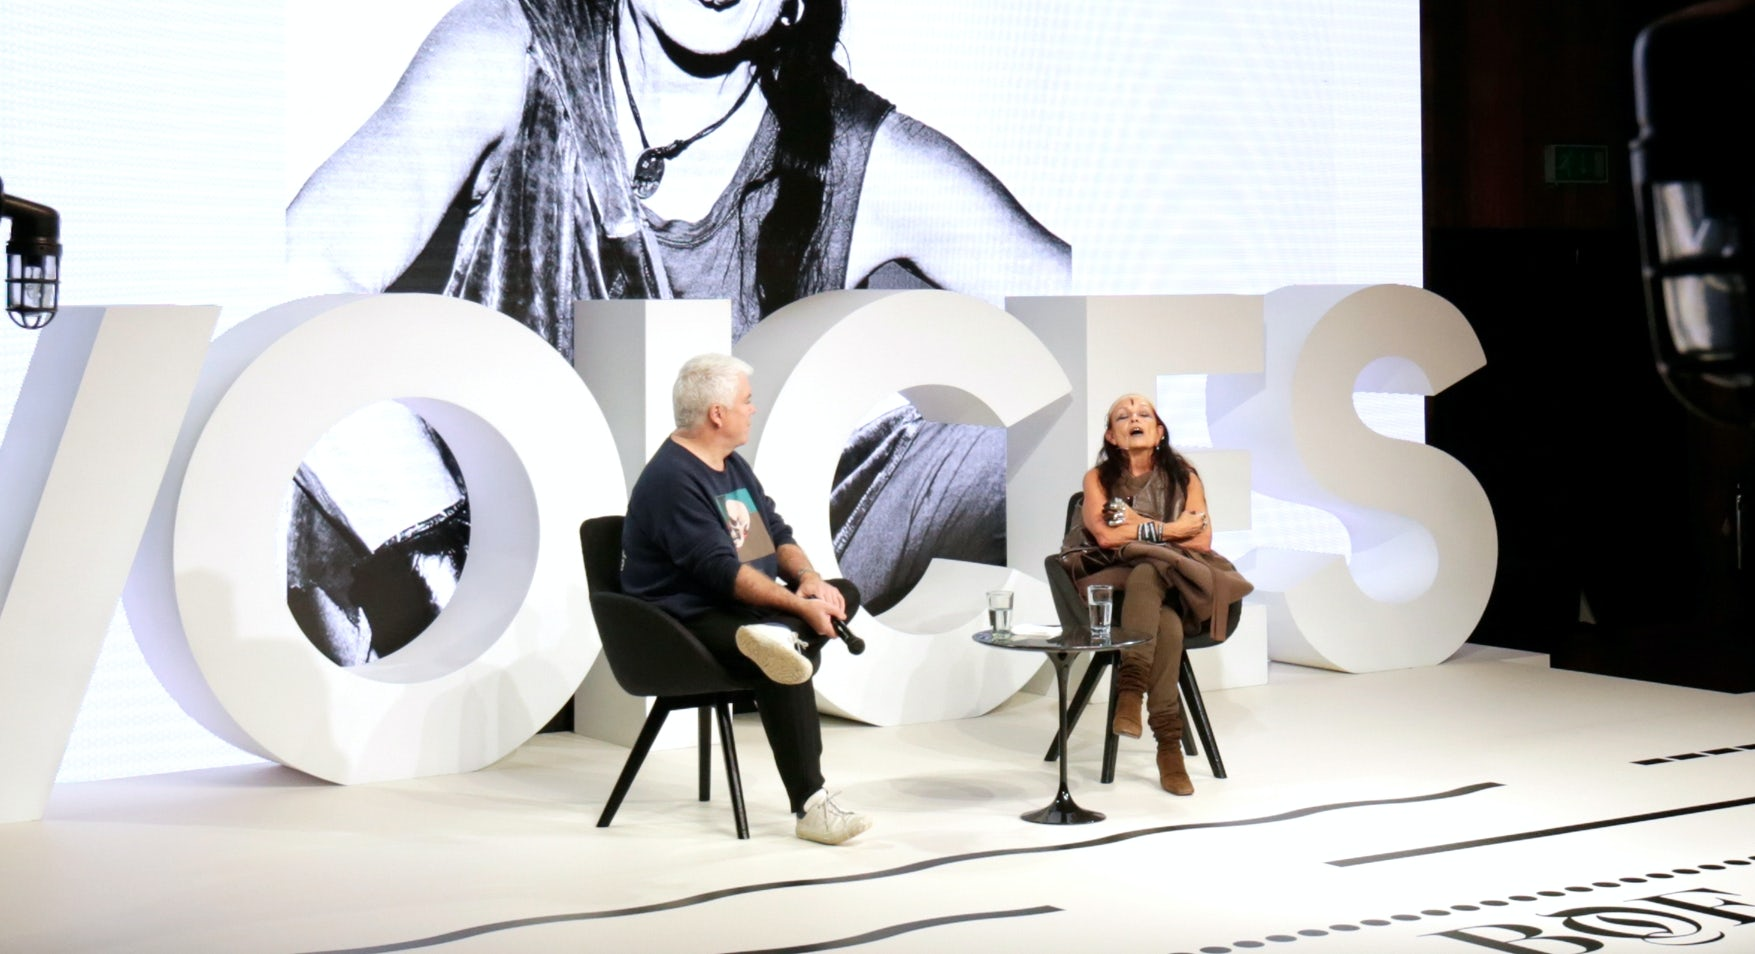 Tim Blanks and Michèle Lamy | Source: Getty Images for The Business of Fashion